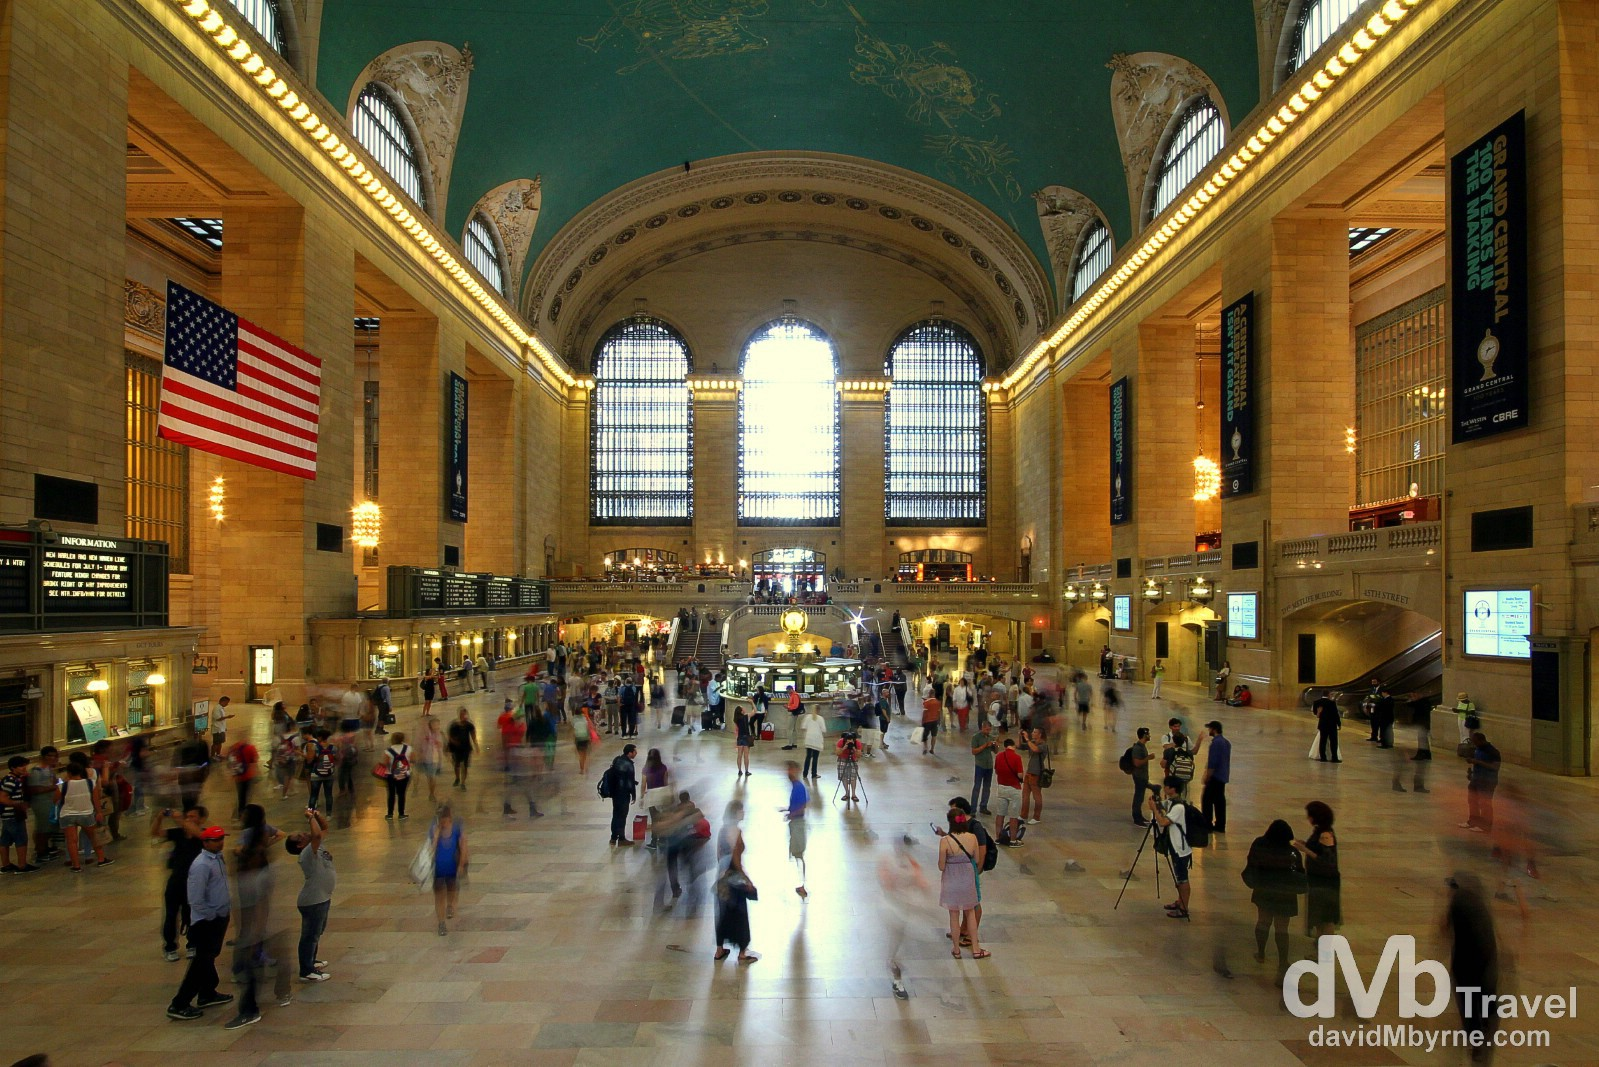 The Main Concourse of Grand Central Station/Terminal, New York City, USA. July 13th 2013.